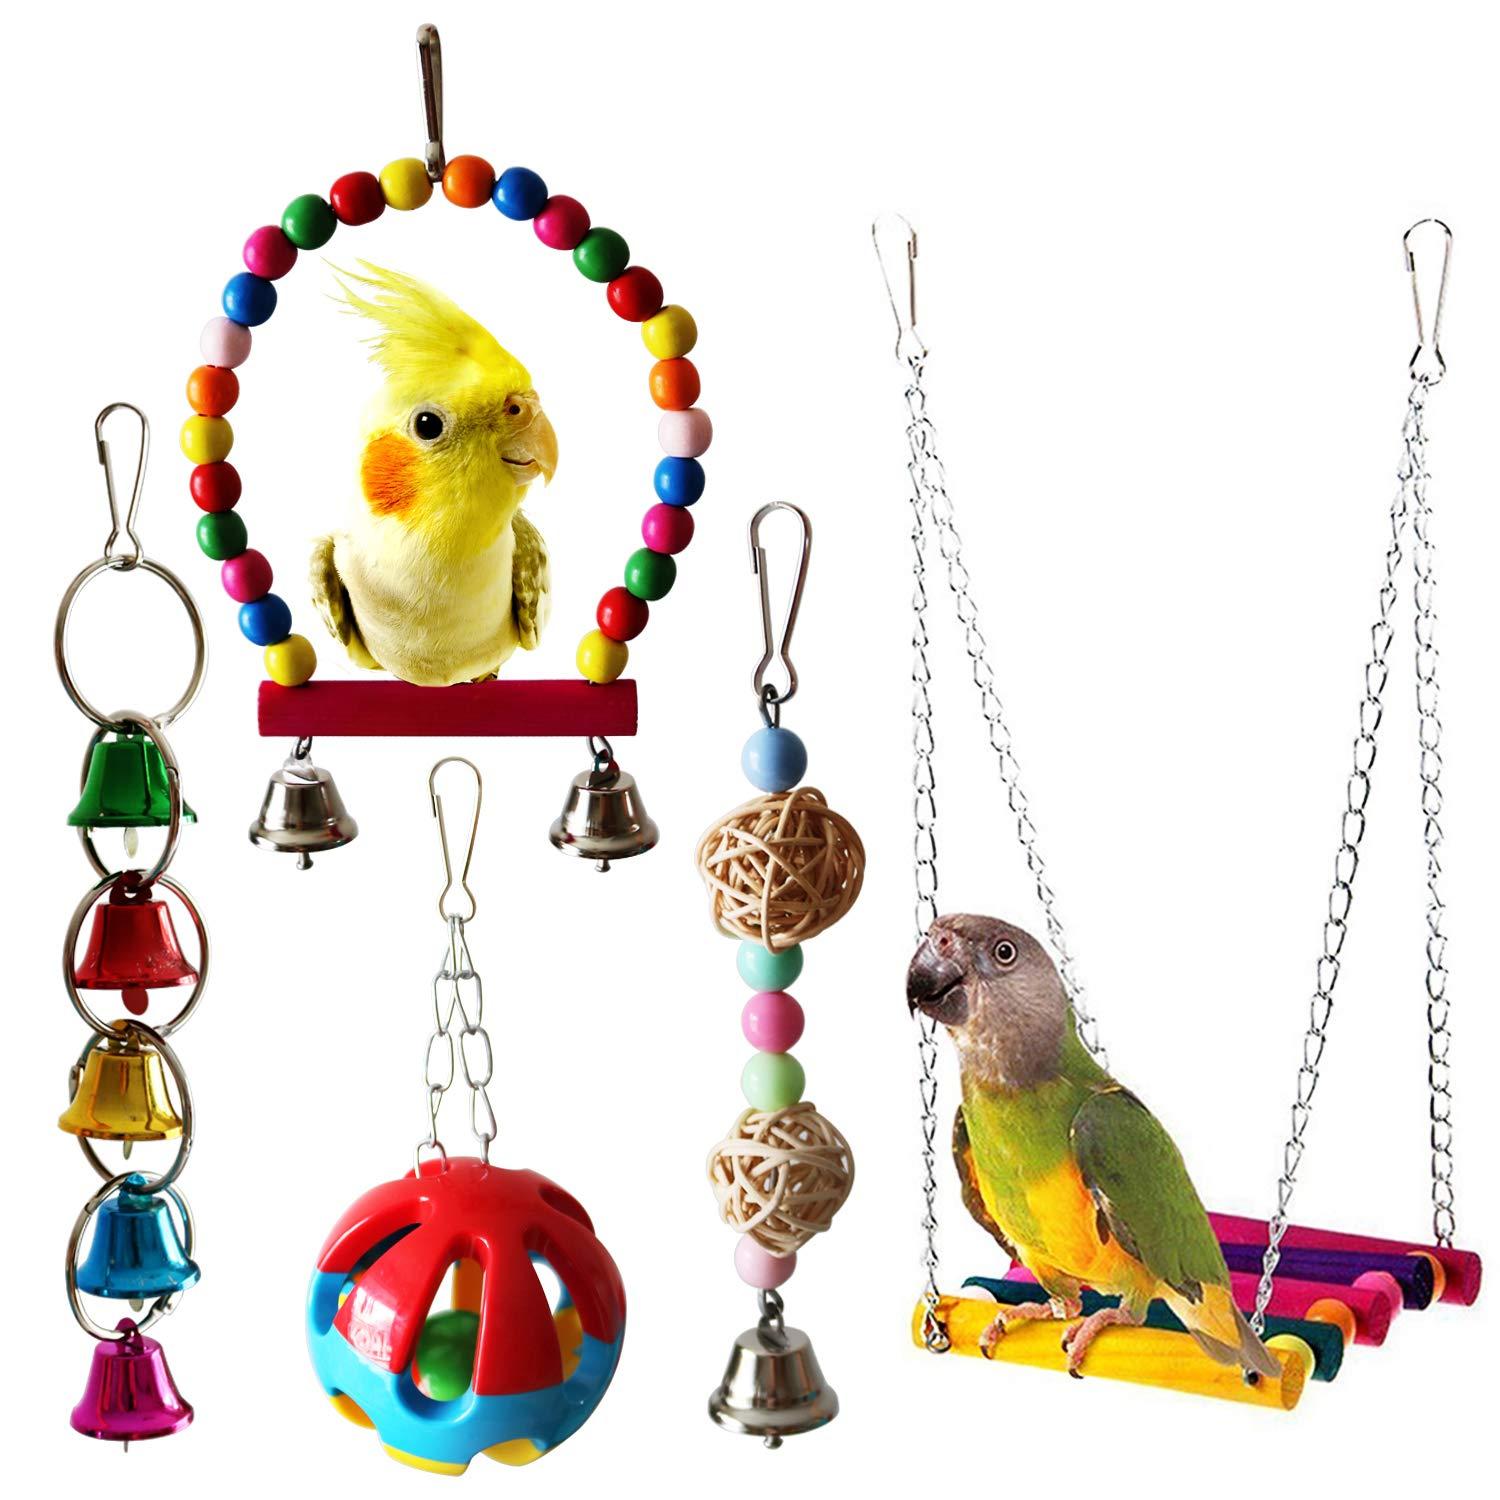 Amazon Com Bwogue Bird Swing Toys With Bells Pet Parrot Cage Hammock Hanging Toy Perch For Budgie Love Birds Conures Small Parakeet Finches Cockatiels 5 Pack Pet Supplies